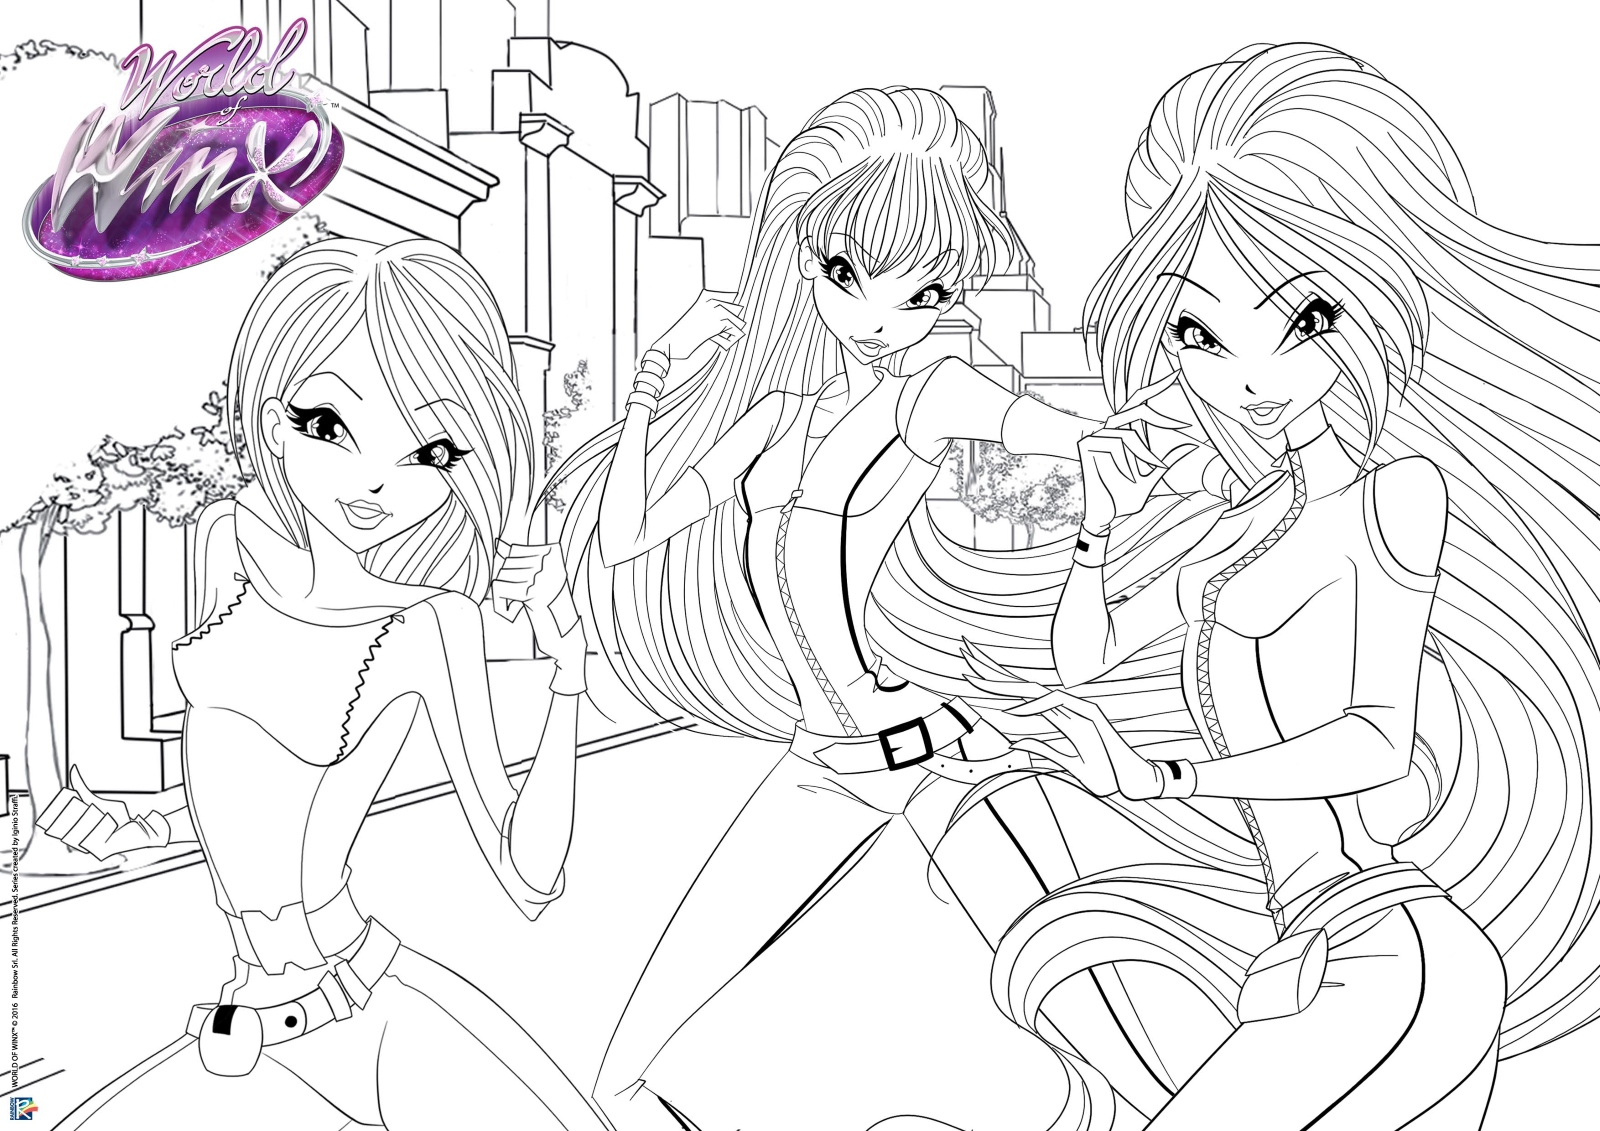 World Of Winx Winx Spy Coloring Pages Winx Club All